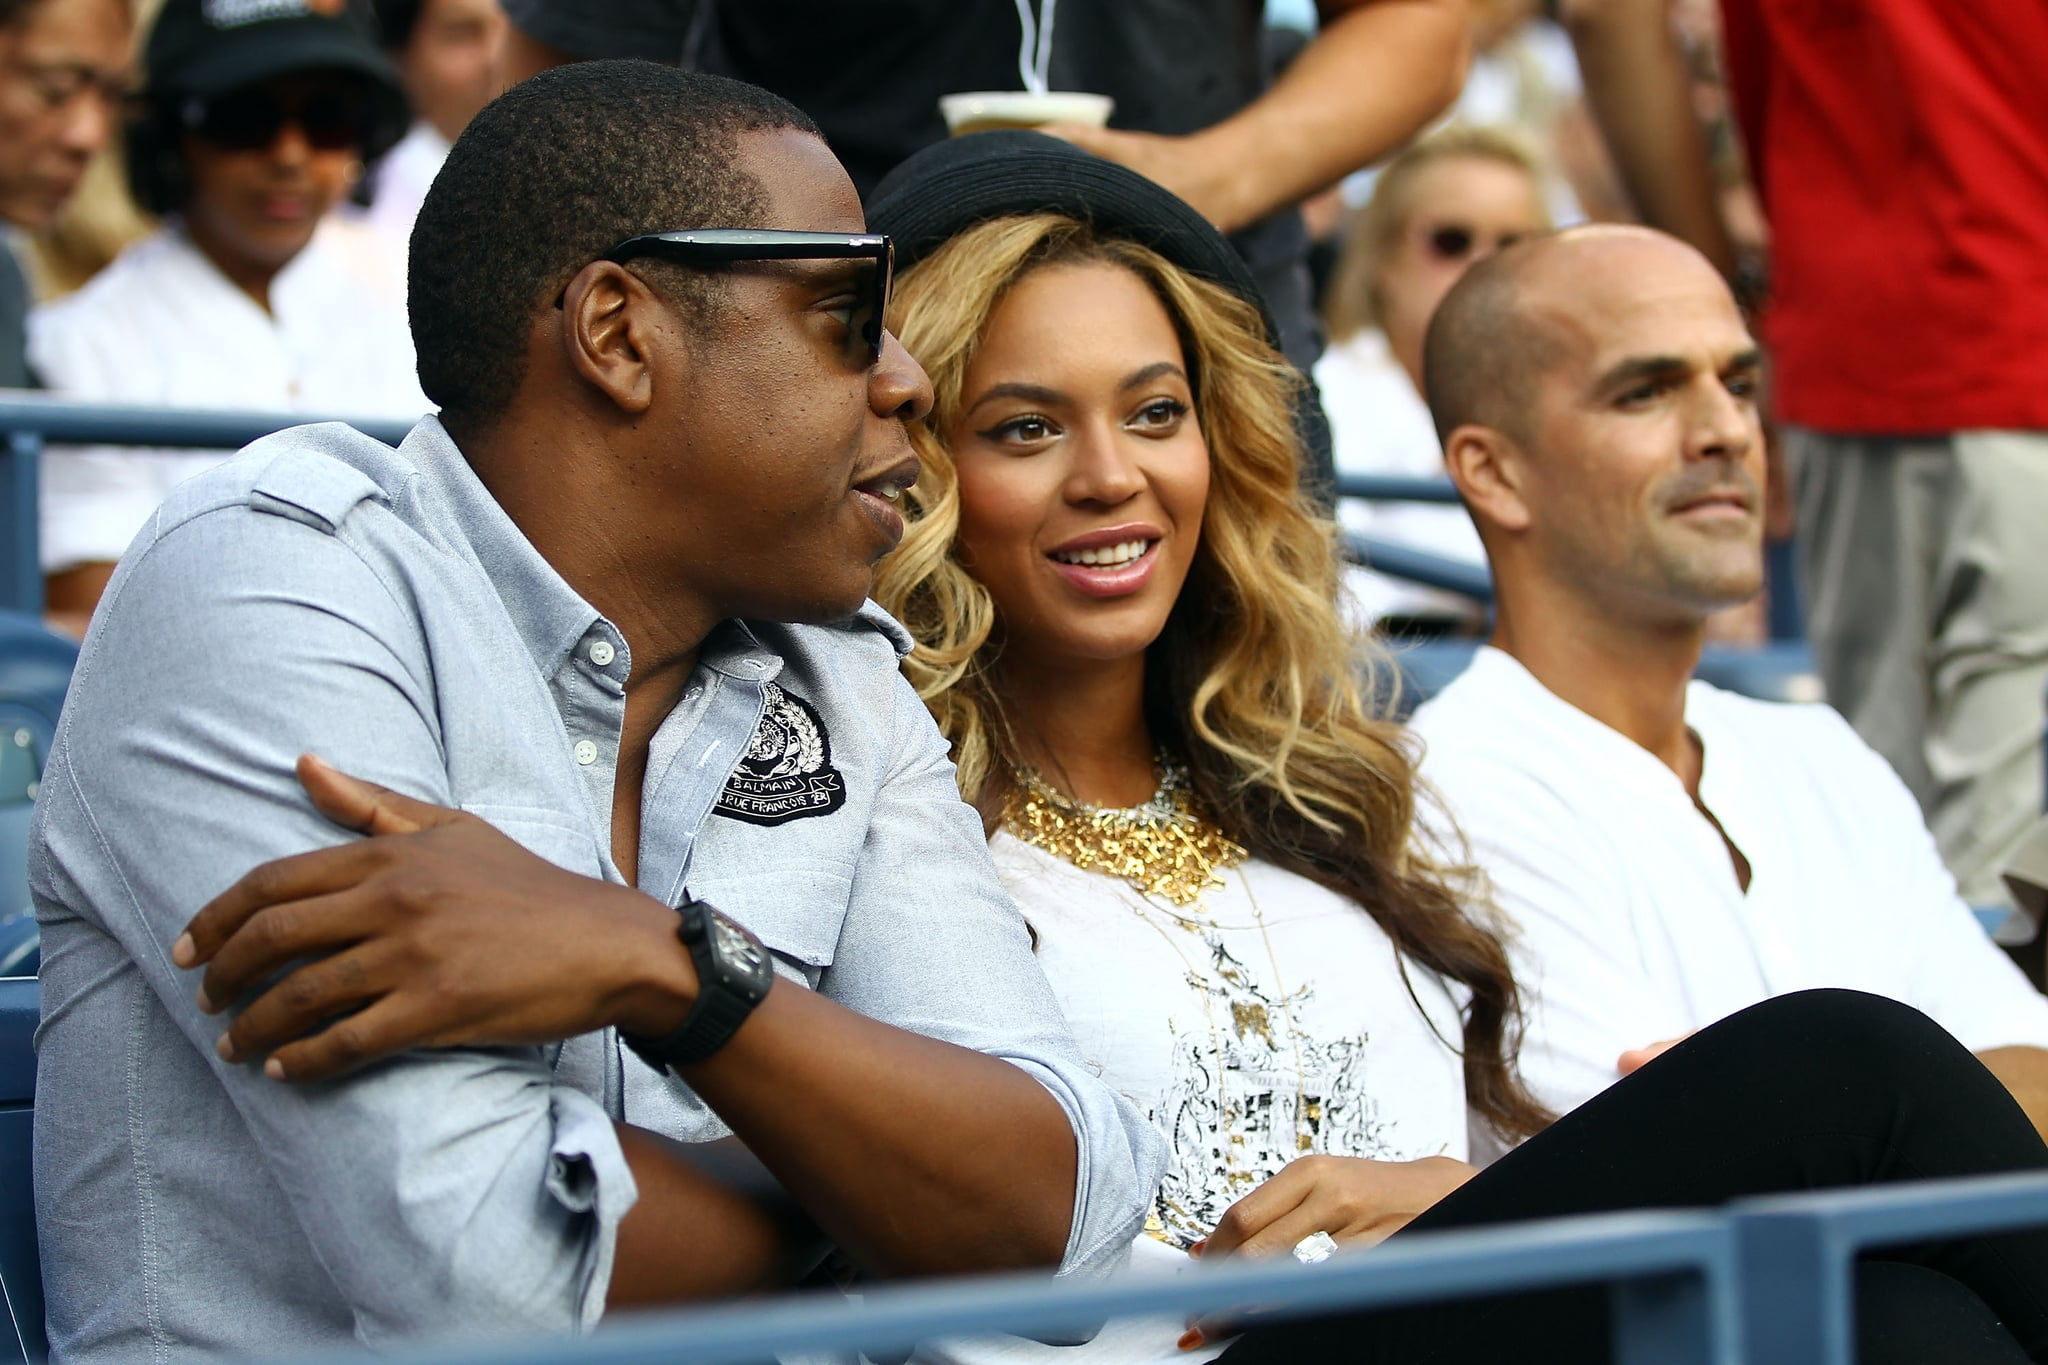 Jay-Z and Beyoncé Knowles in the stands yesterday to check out the action at the US Open in Queens.